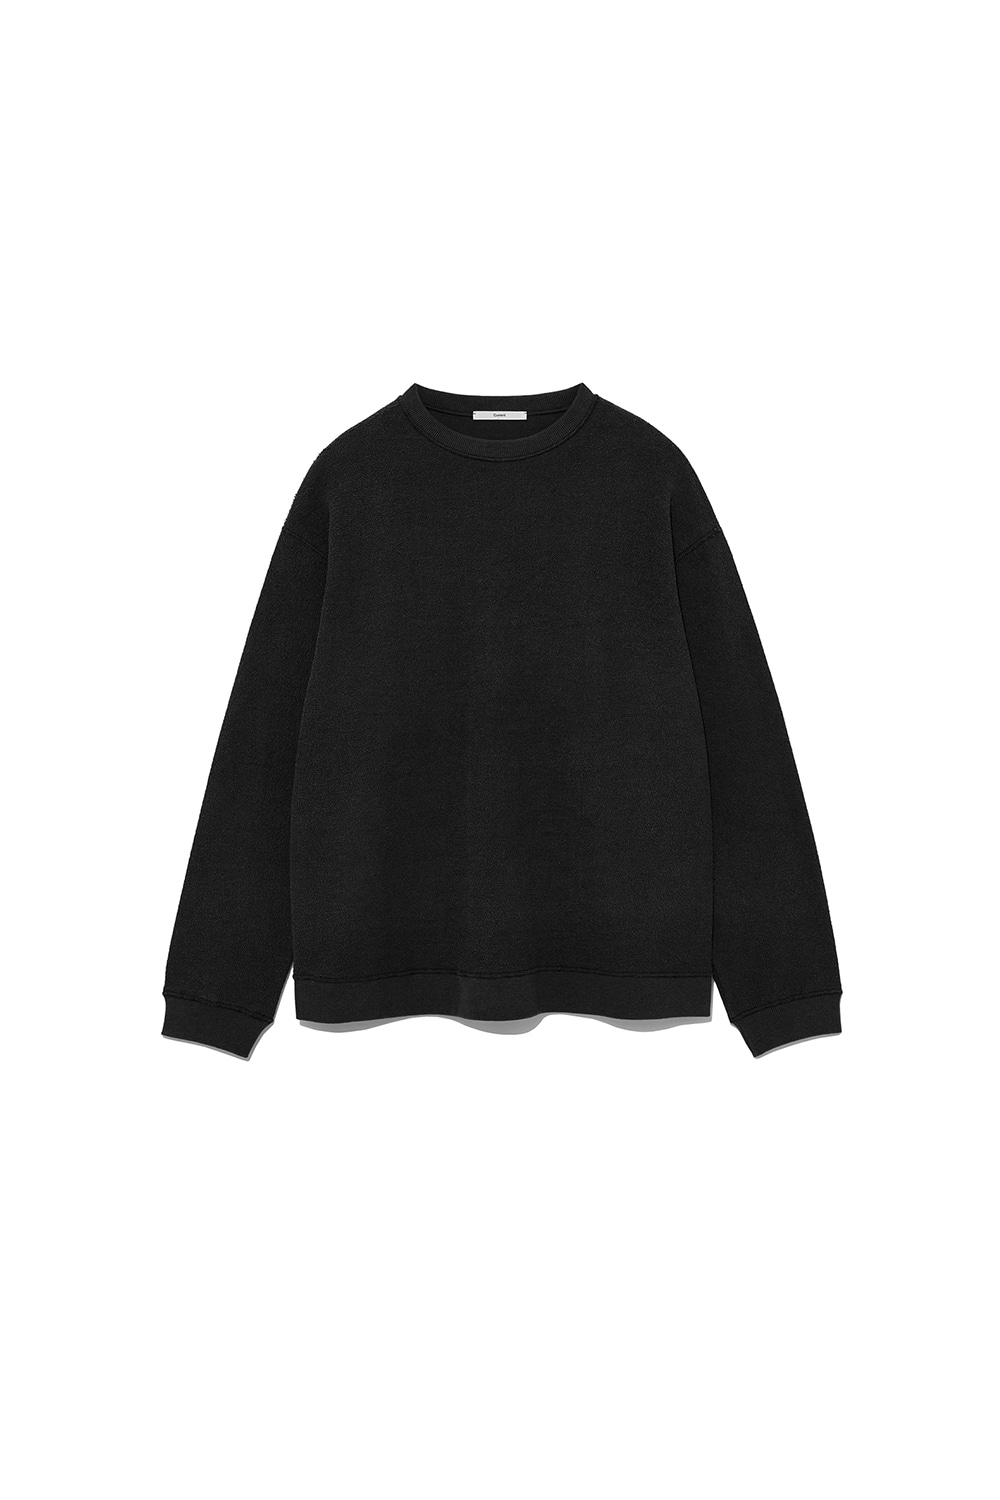 Reverse Sweatshirt Men [Black]